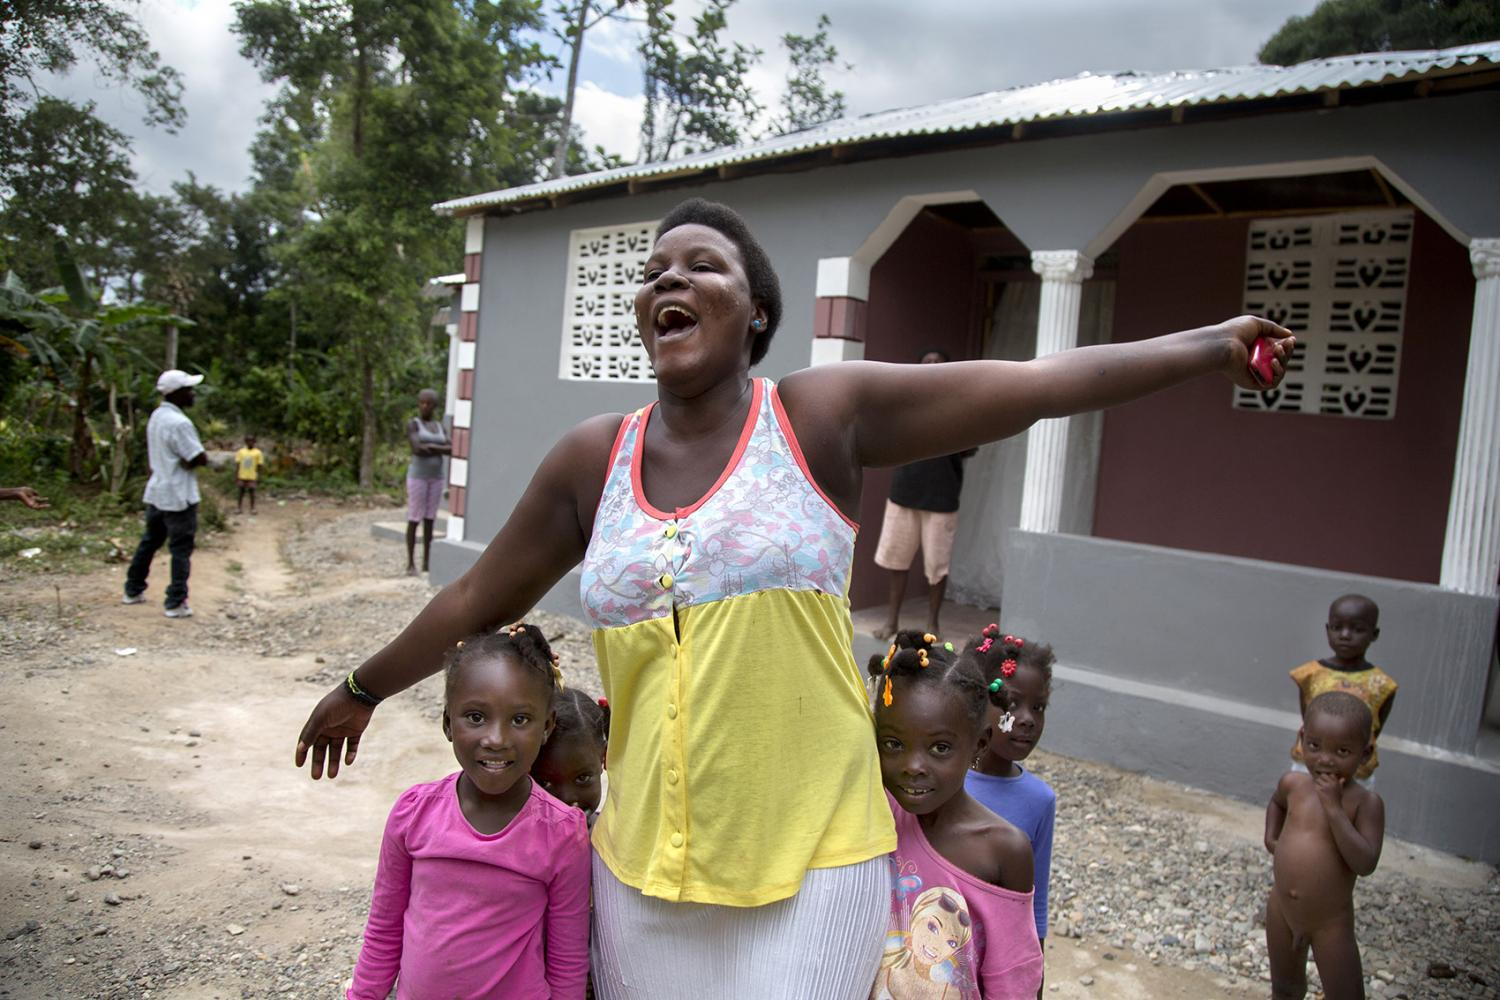 A woman celebrates moving into her new house with her family in Milot, Haiti. The house was paid for by a $5000 donation from a visiting physician.